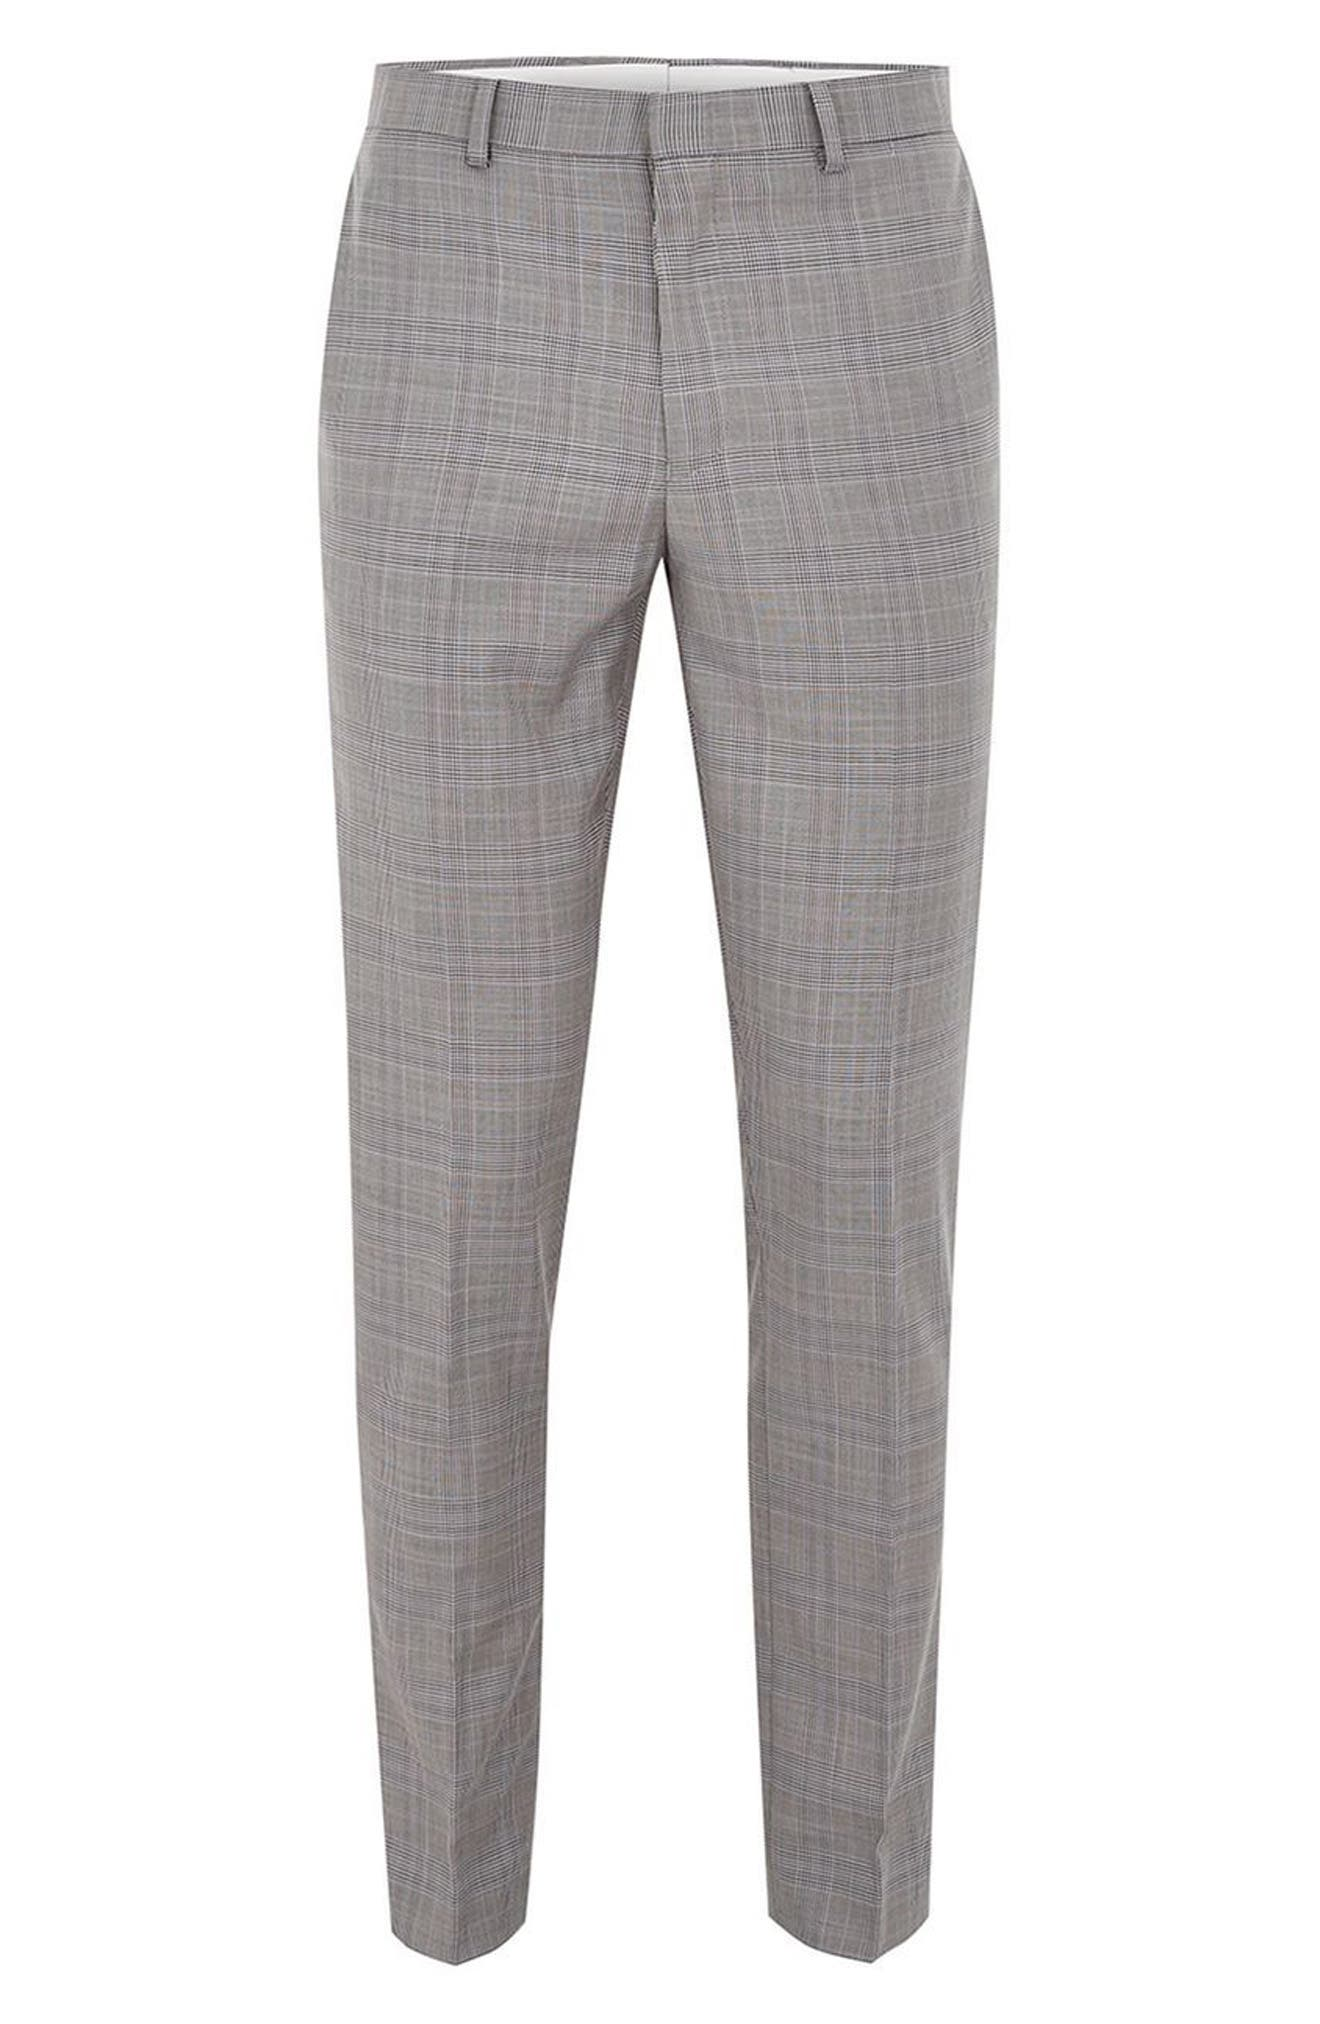 Skinny Fit Check Suit Trousers,                             Alternate thumbnail 4, color,                             020